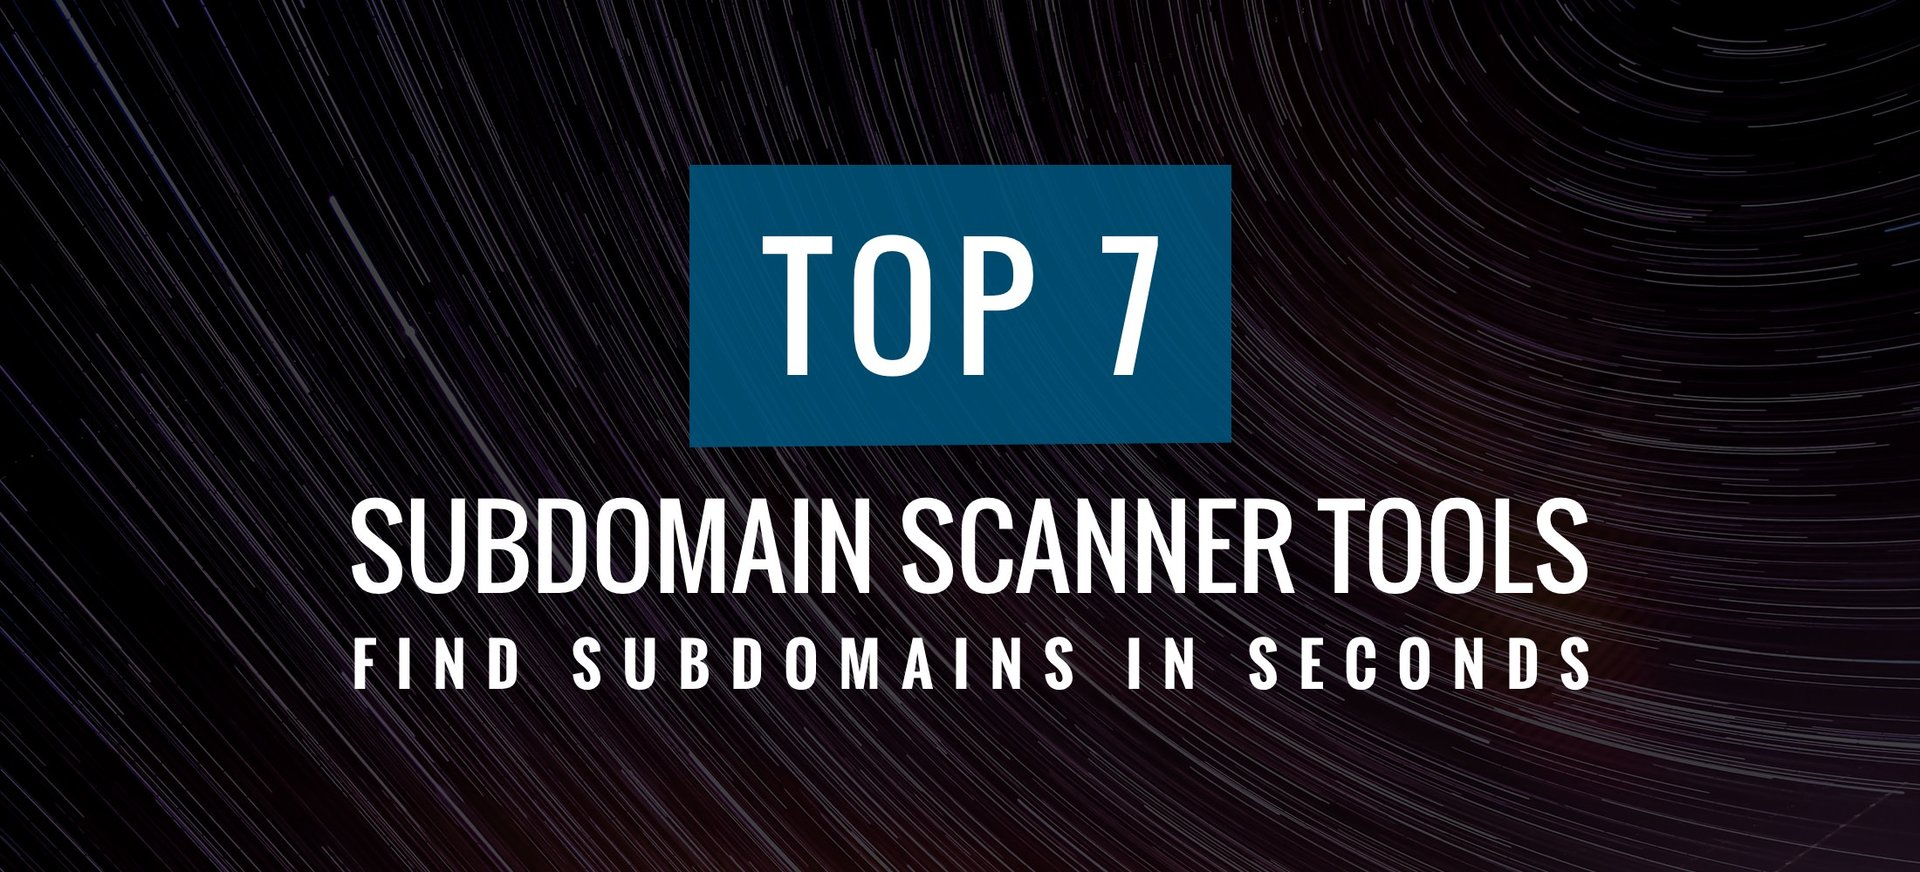 Top 7 Subdomain Scanner tools to find subdomains